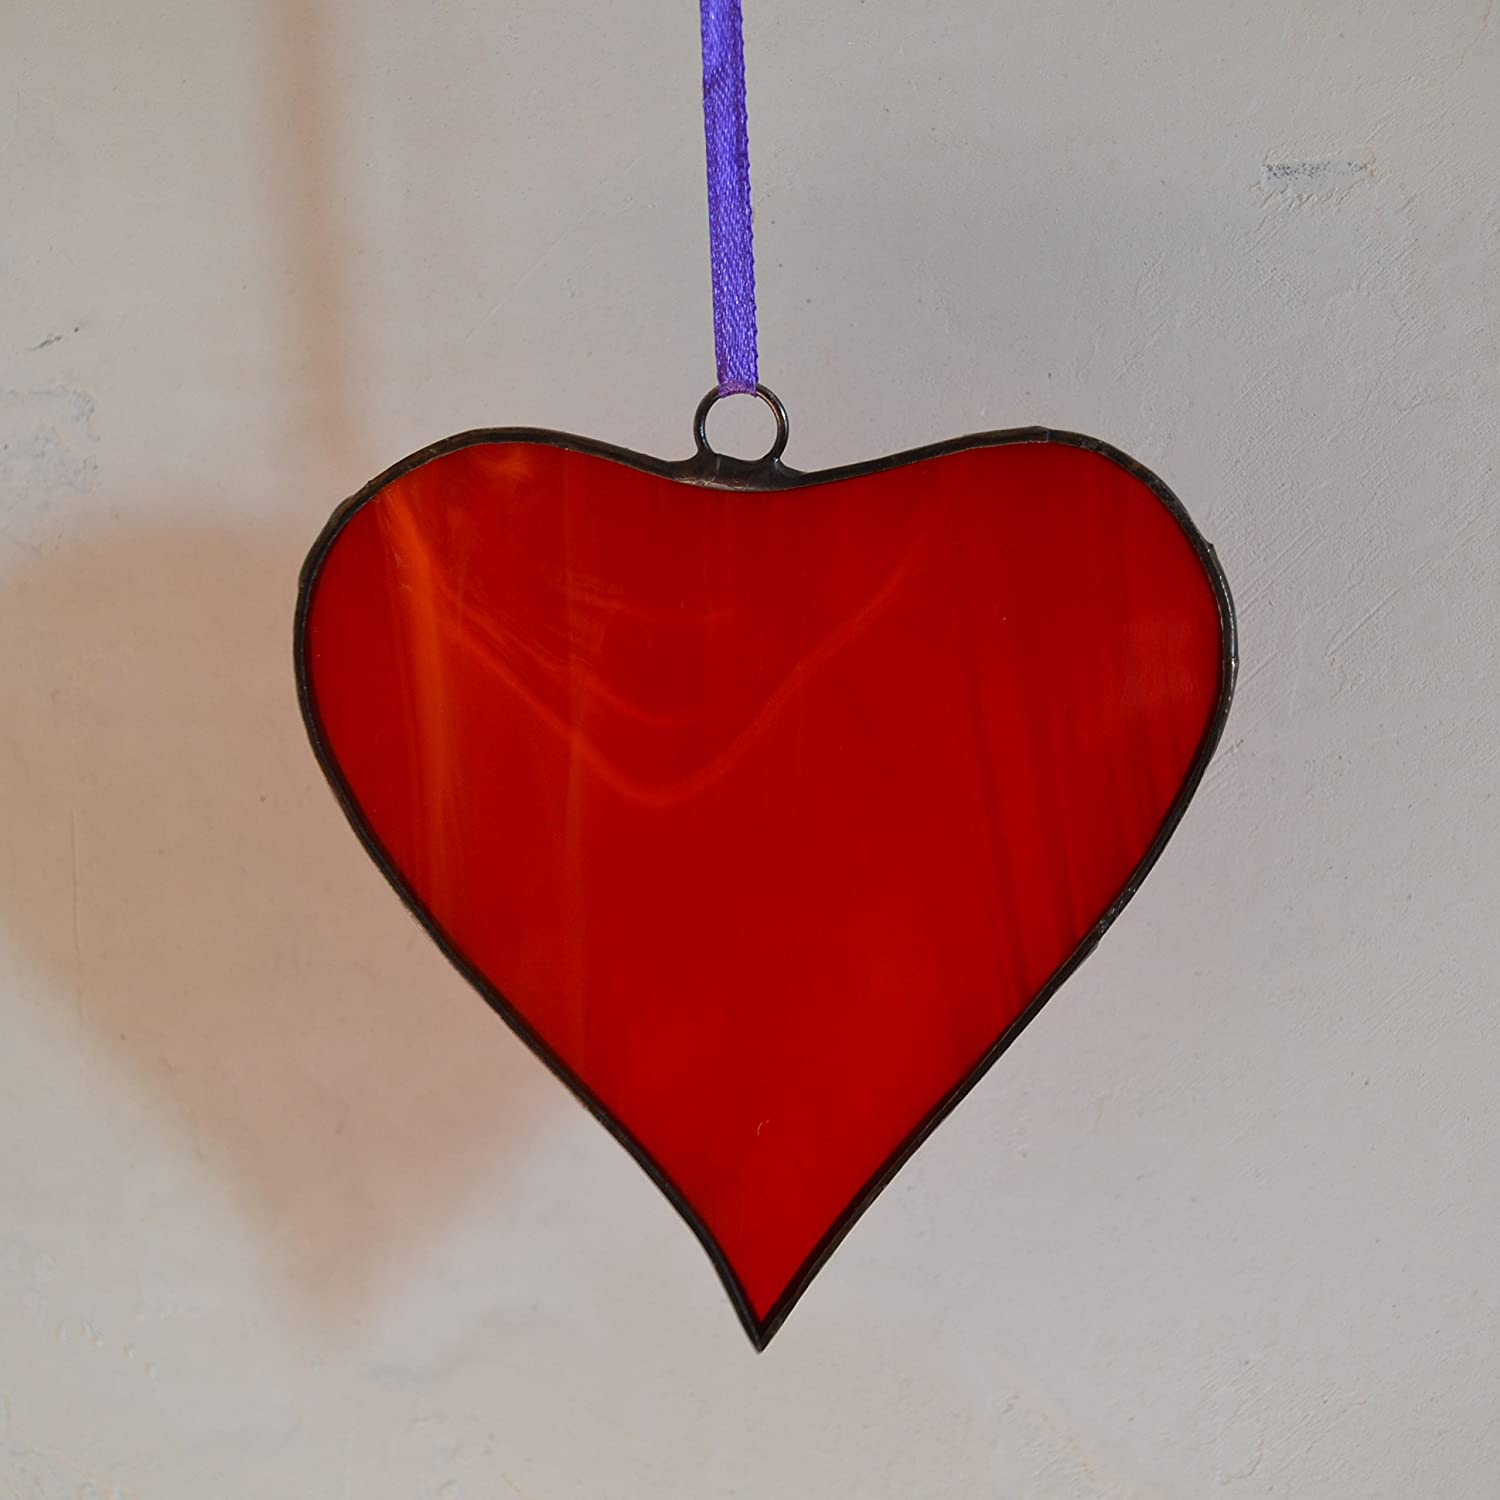 Red Heart Ornament made of Stained glass Romantic Gift to say I love you